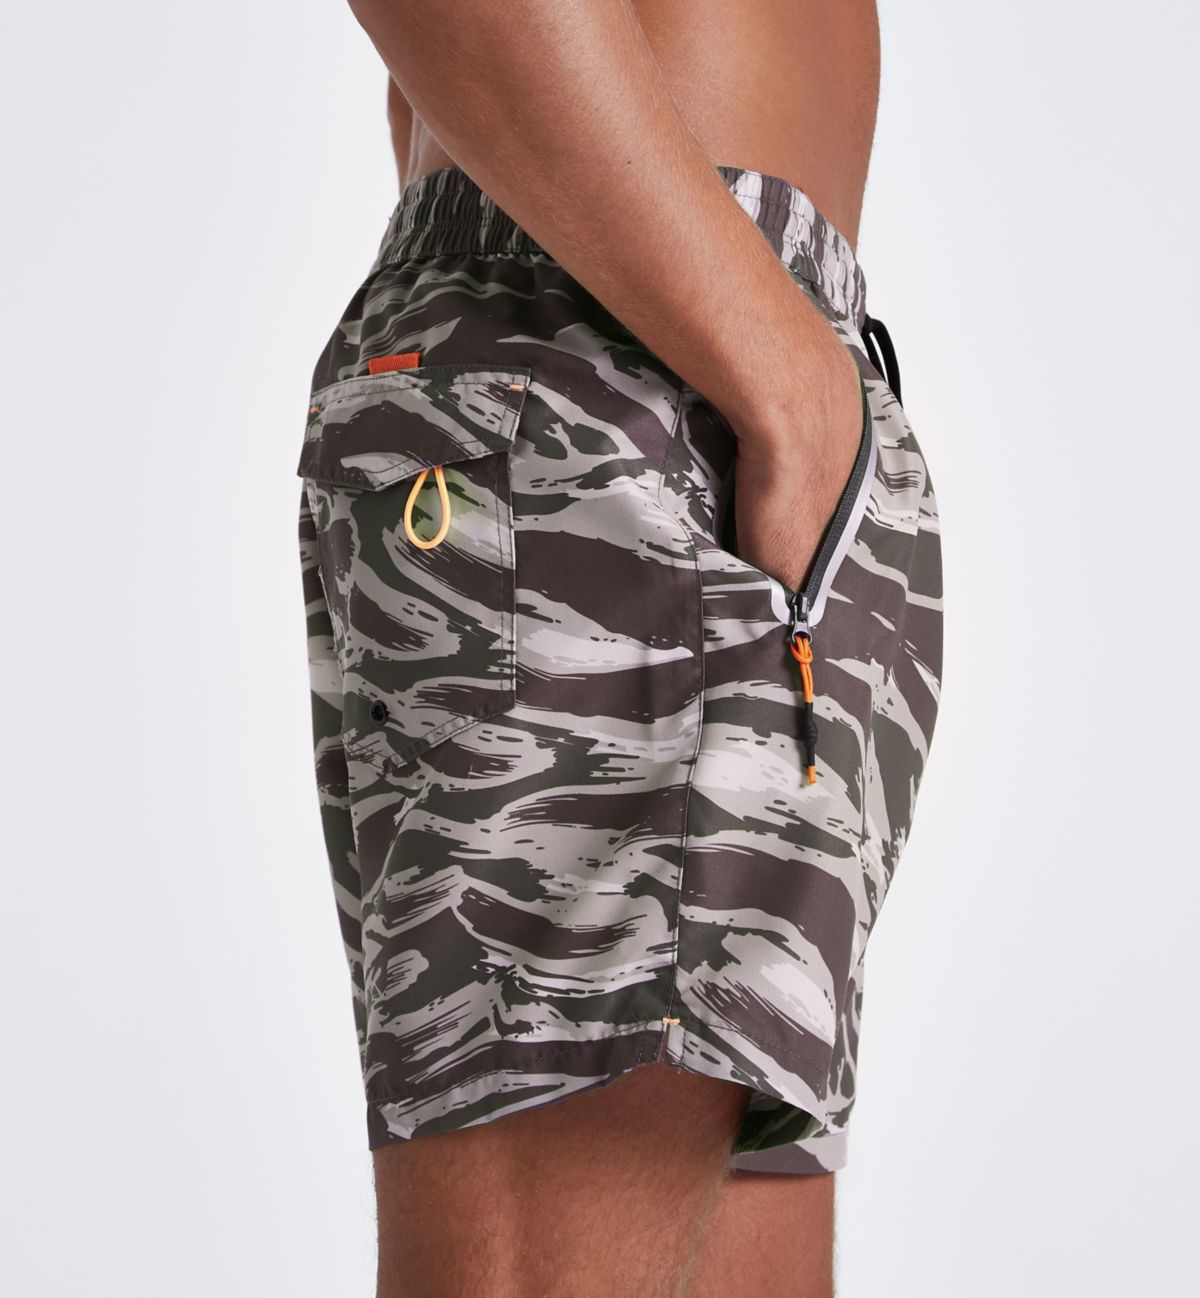 Khaki green camo short swim shorts